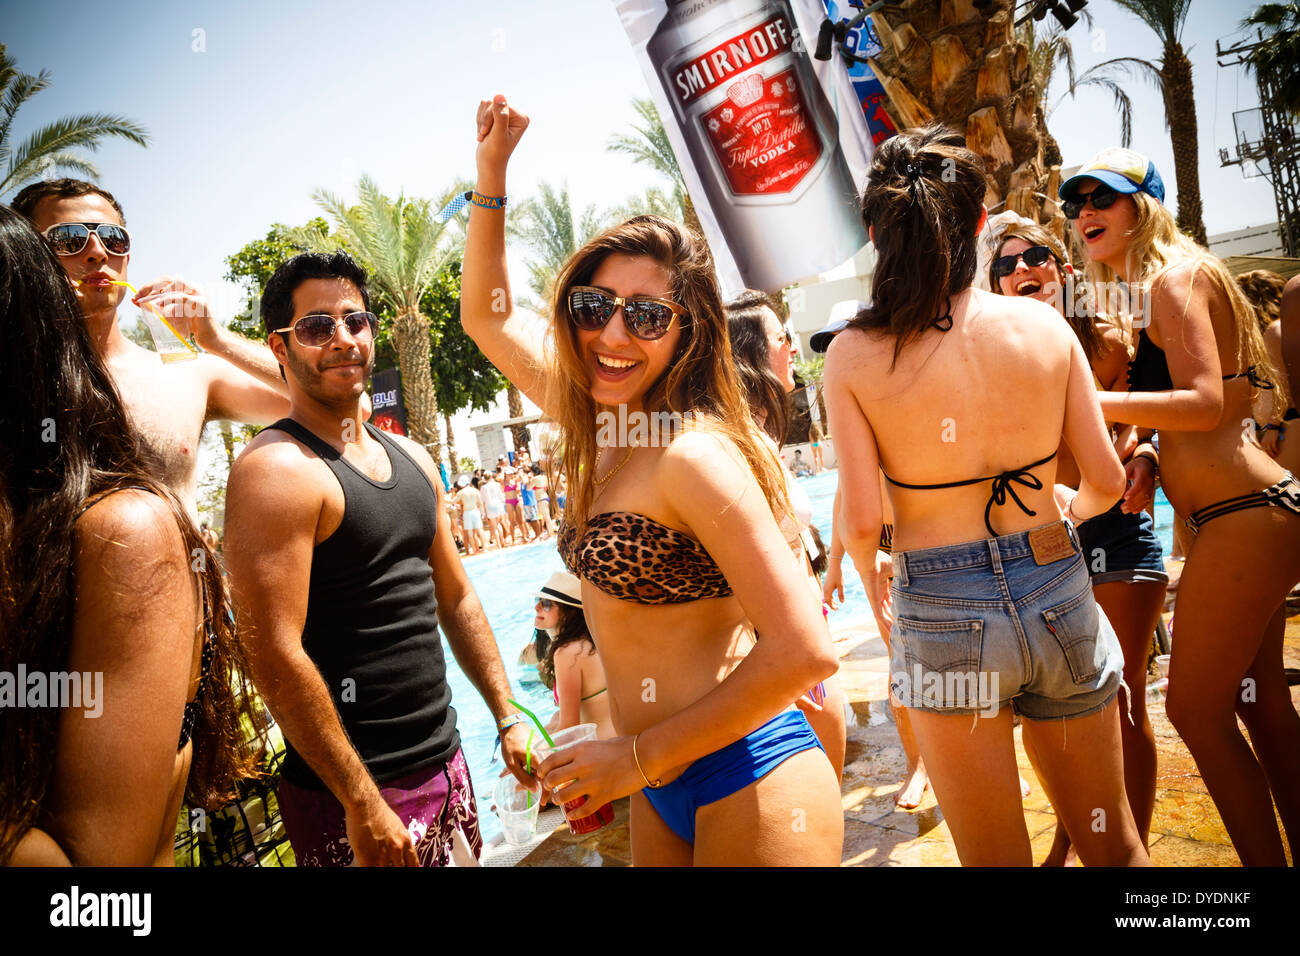 Students party in Eilat, Israel. - Stock Image